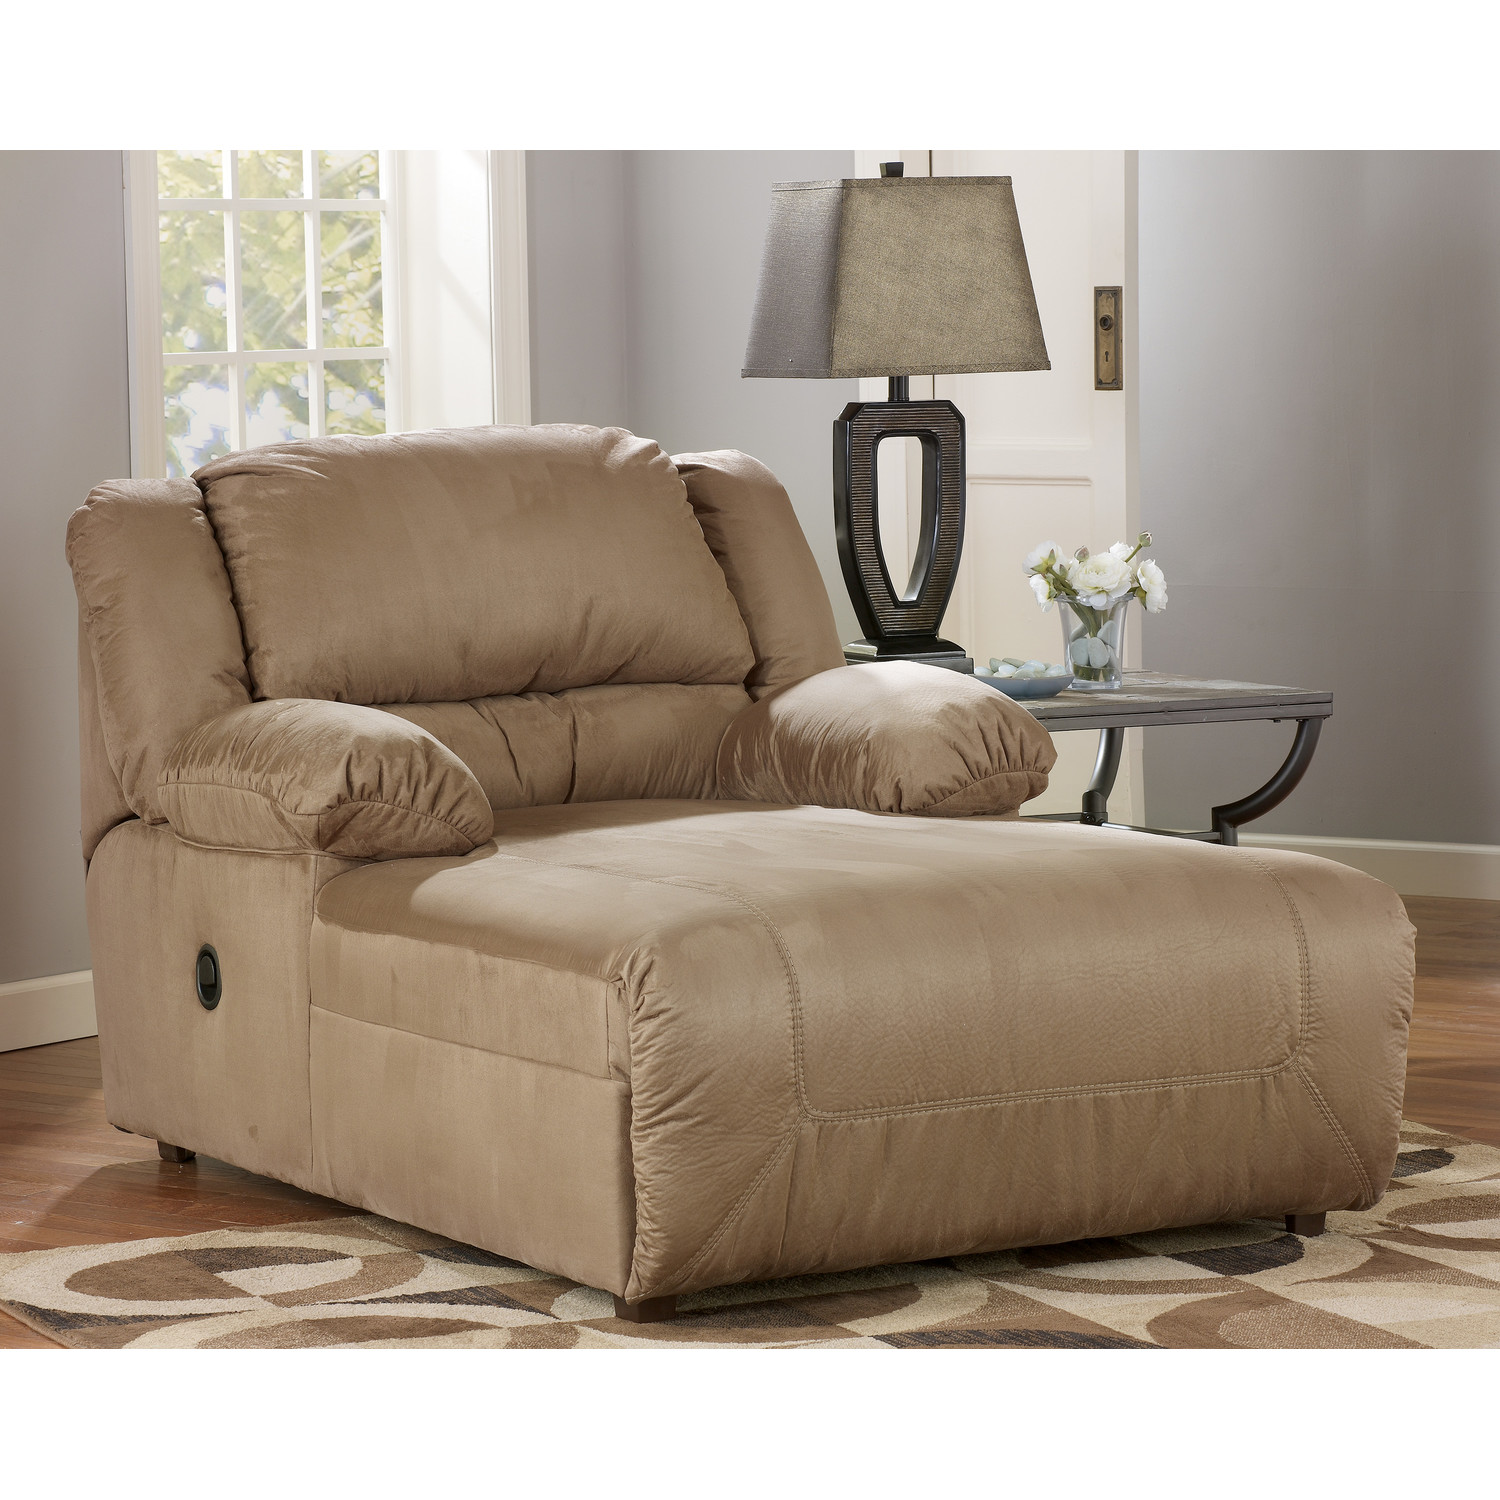 Best to relax comfy chair for bedroom homesfeed Comfy chairs for bedroom